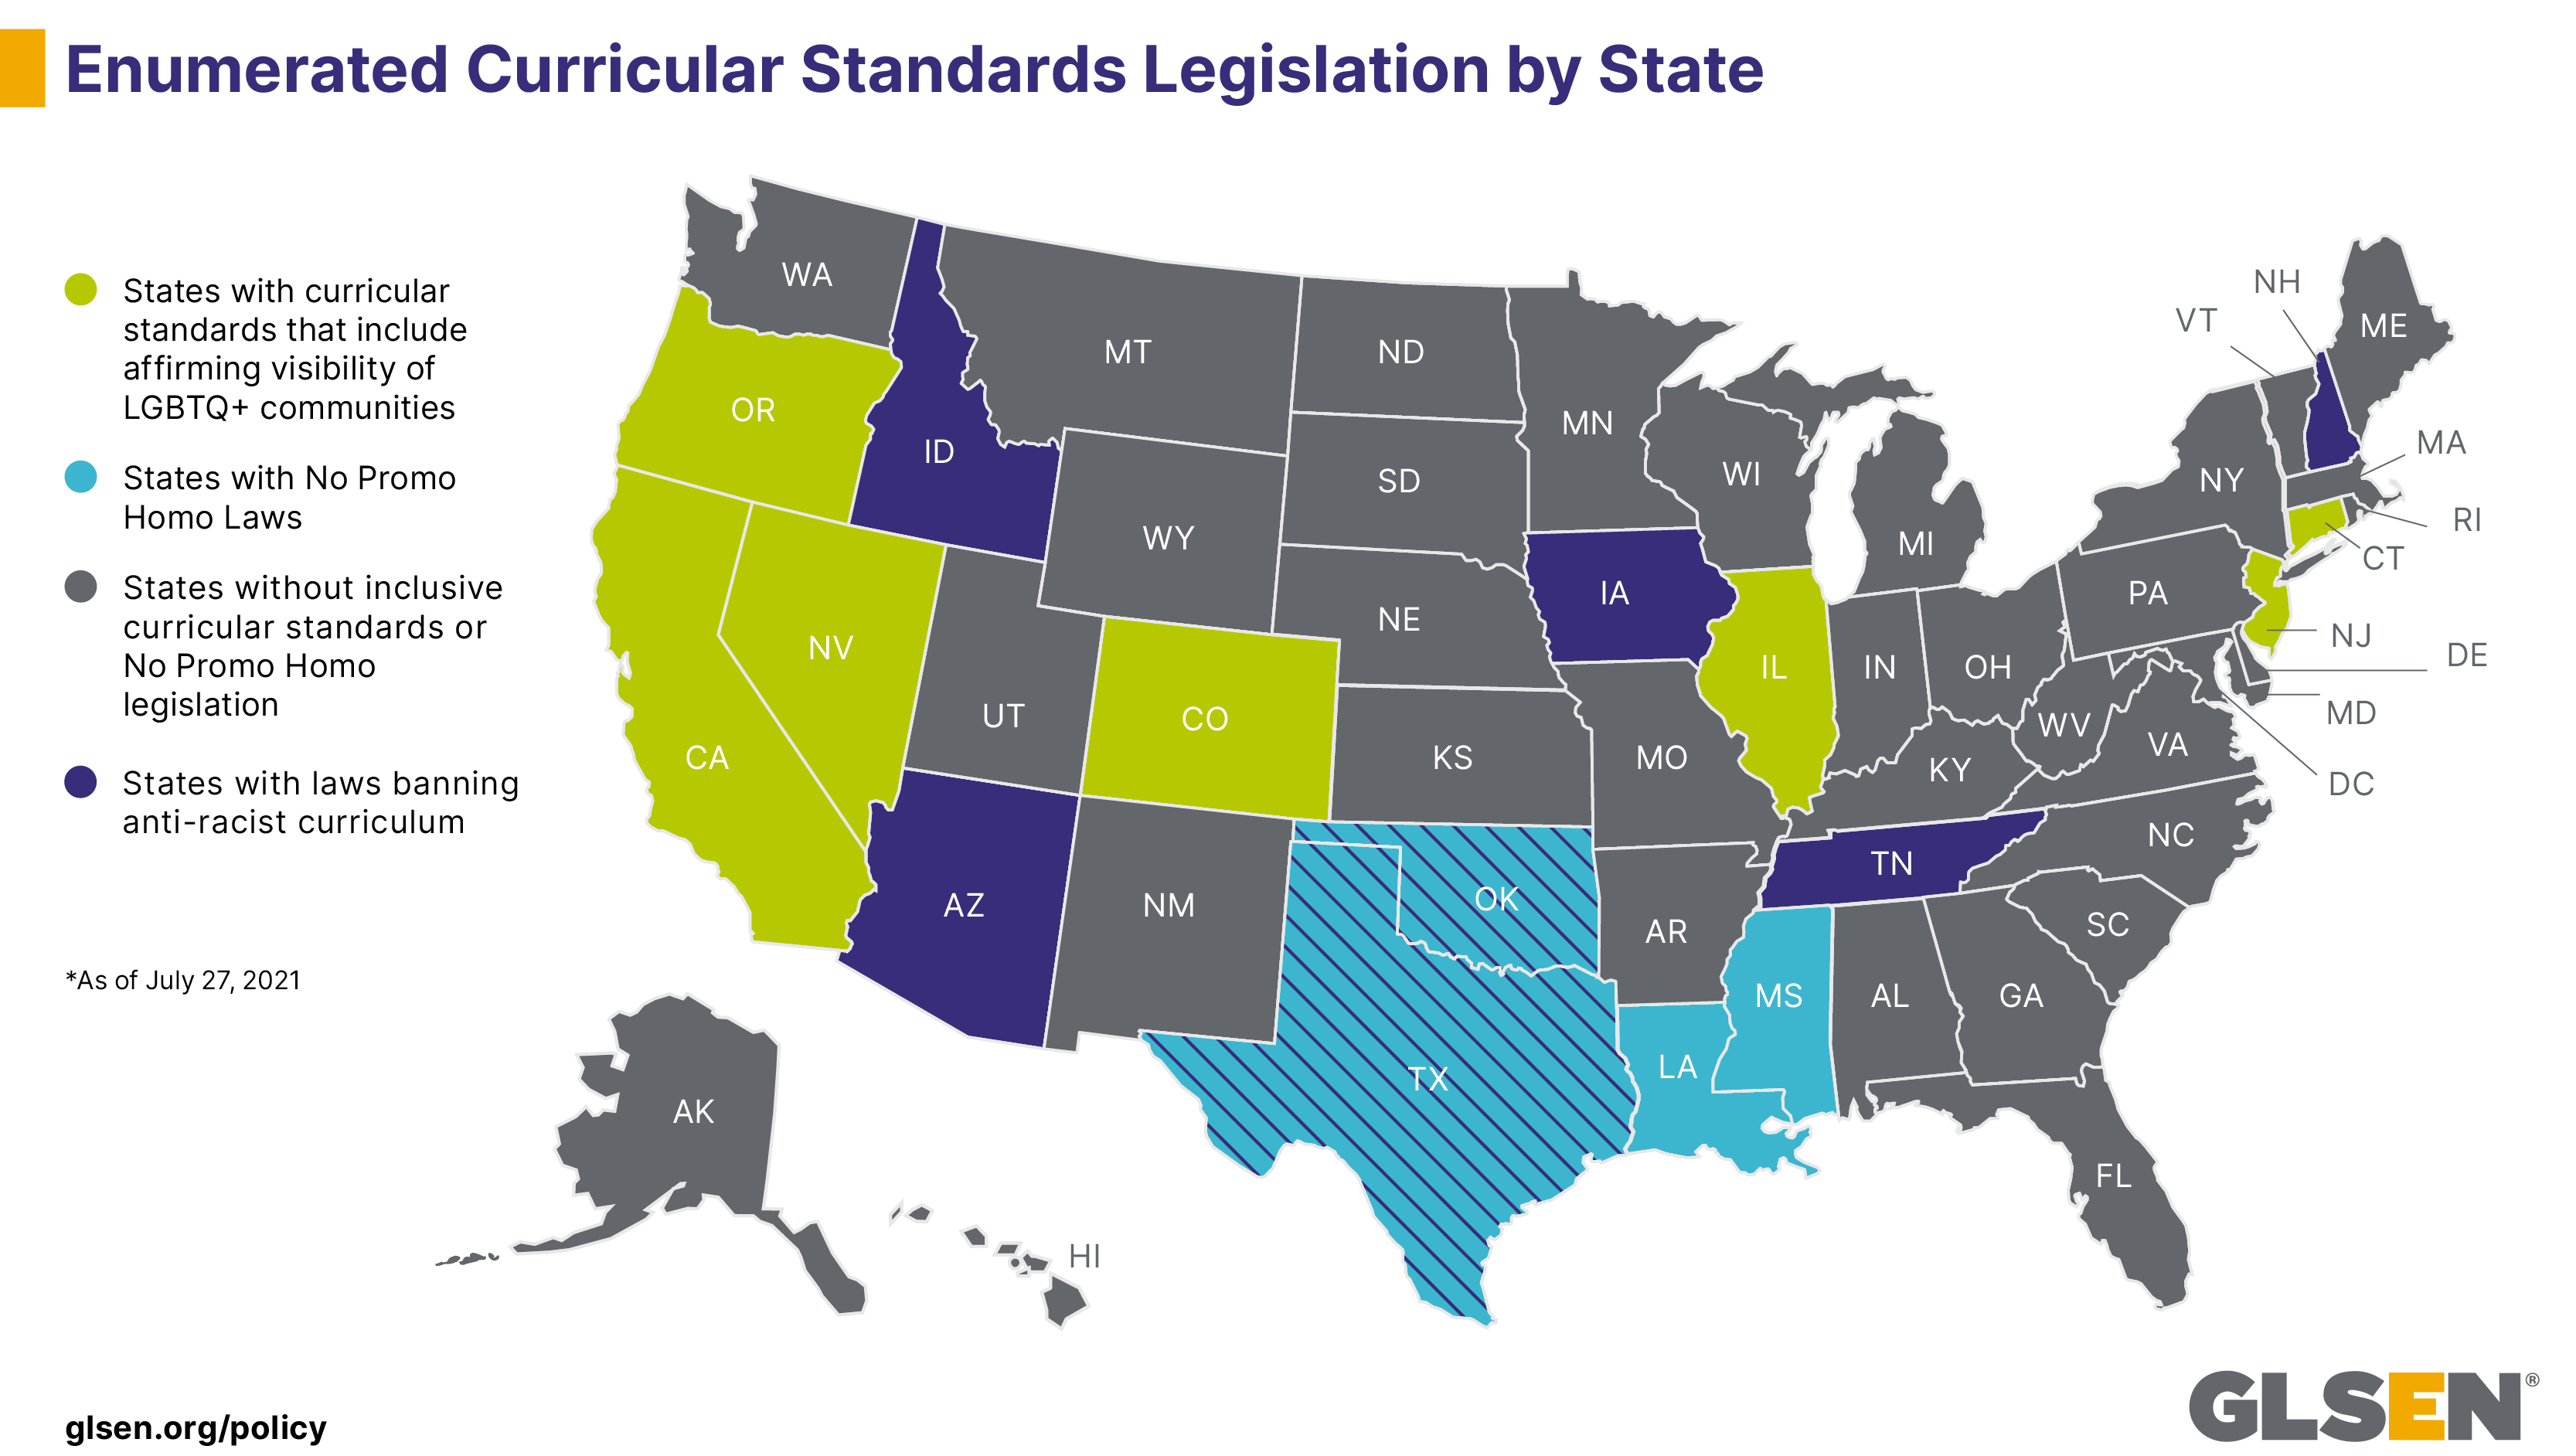 Enumerated Curricular Standards Legislation by State